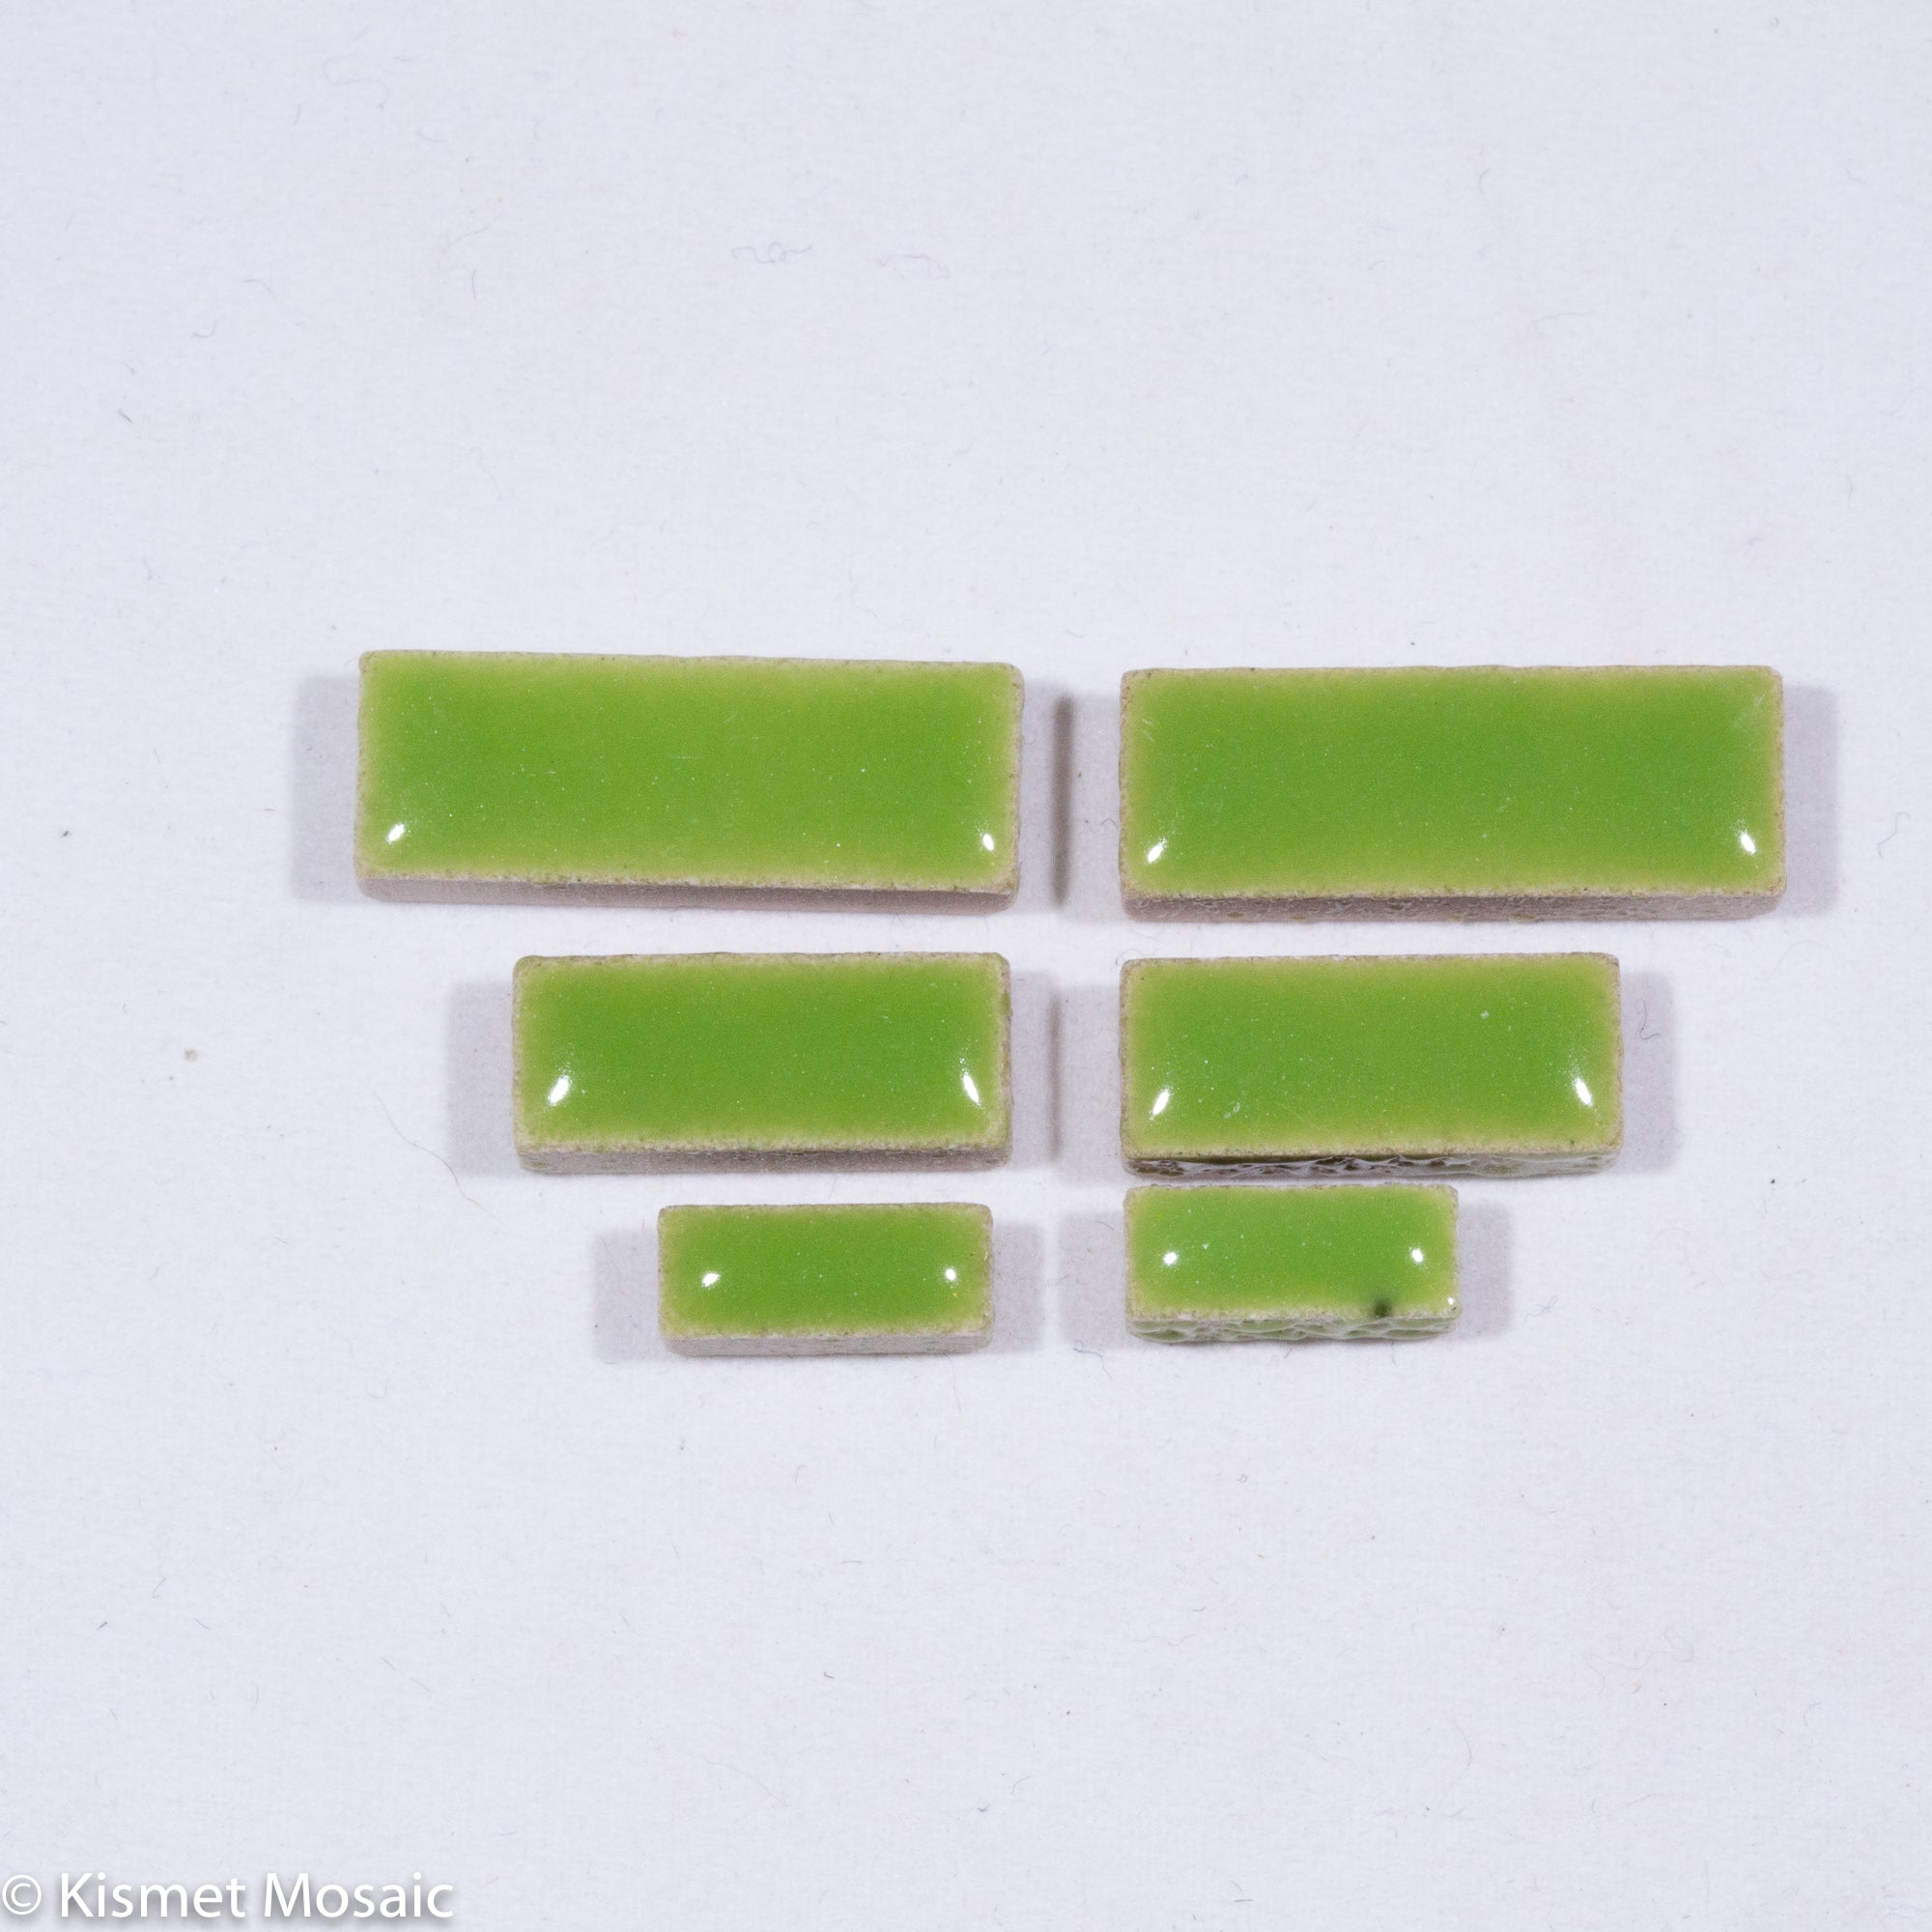 c-Lime Green Rectangles, CeramicRectangles tile - Kismet Mosaic - mosaic supplies